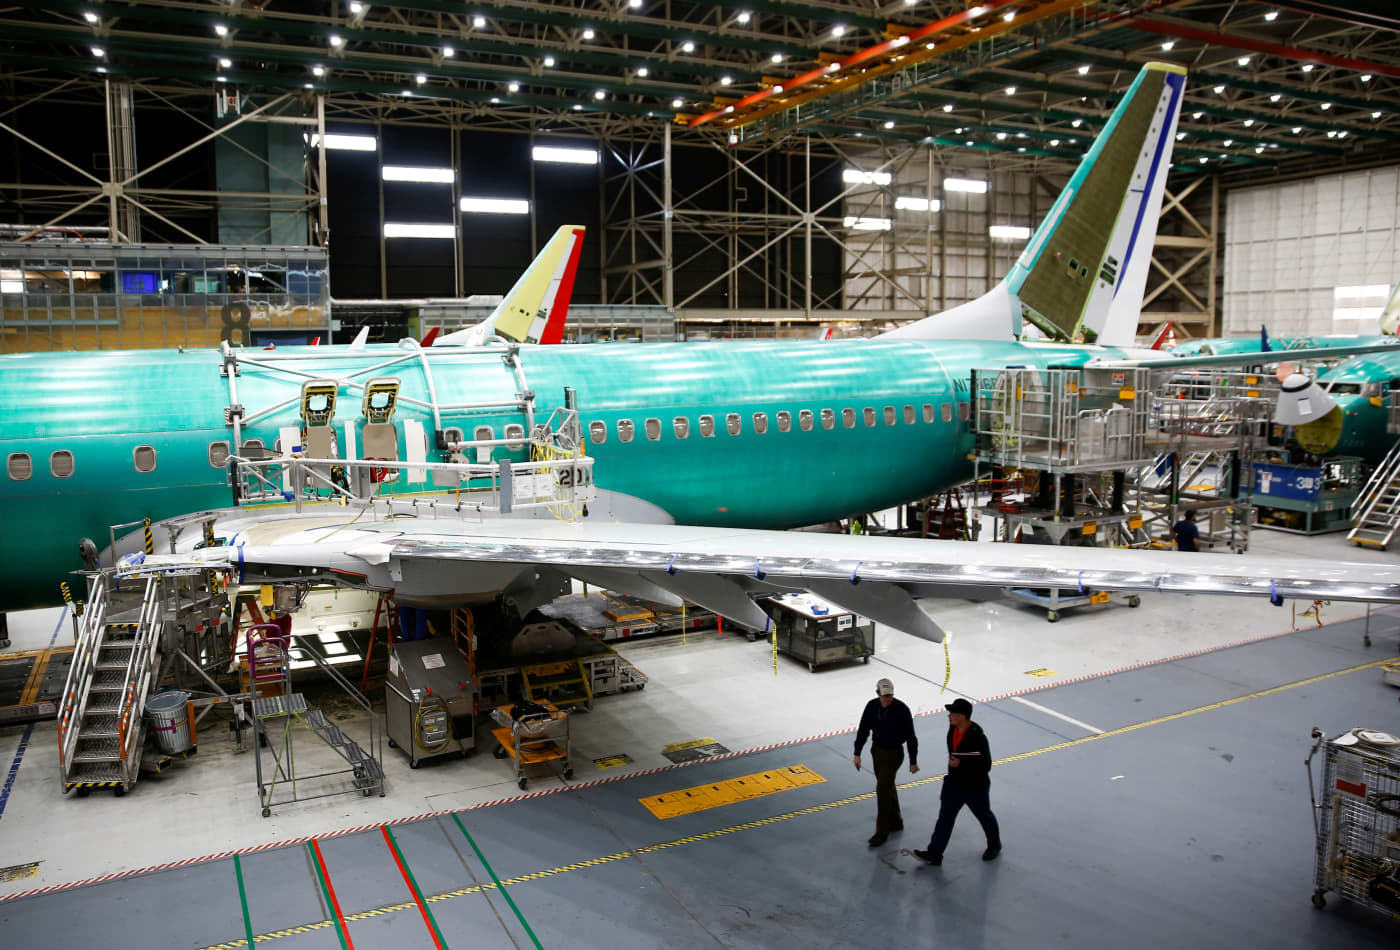 Boeing 737 Max could be recertified before midyear, FAA says